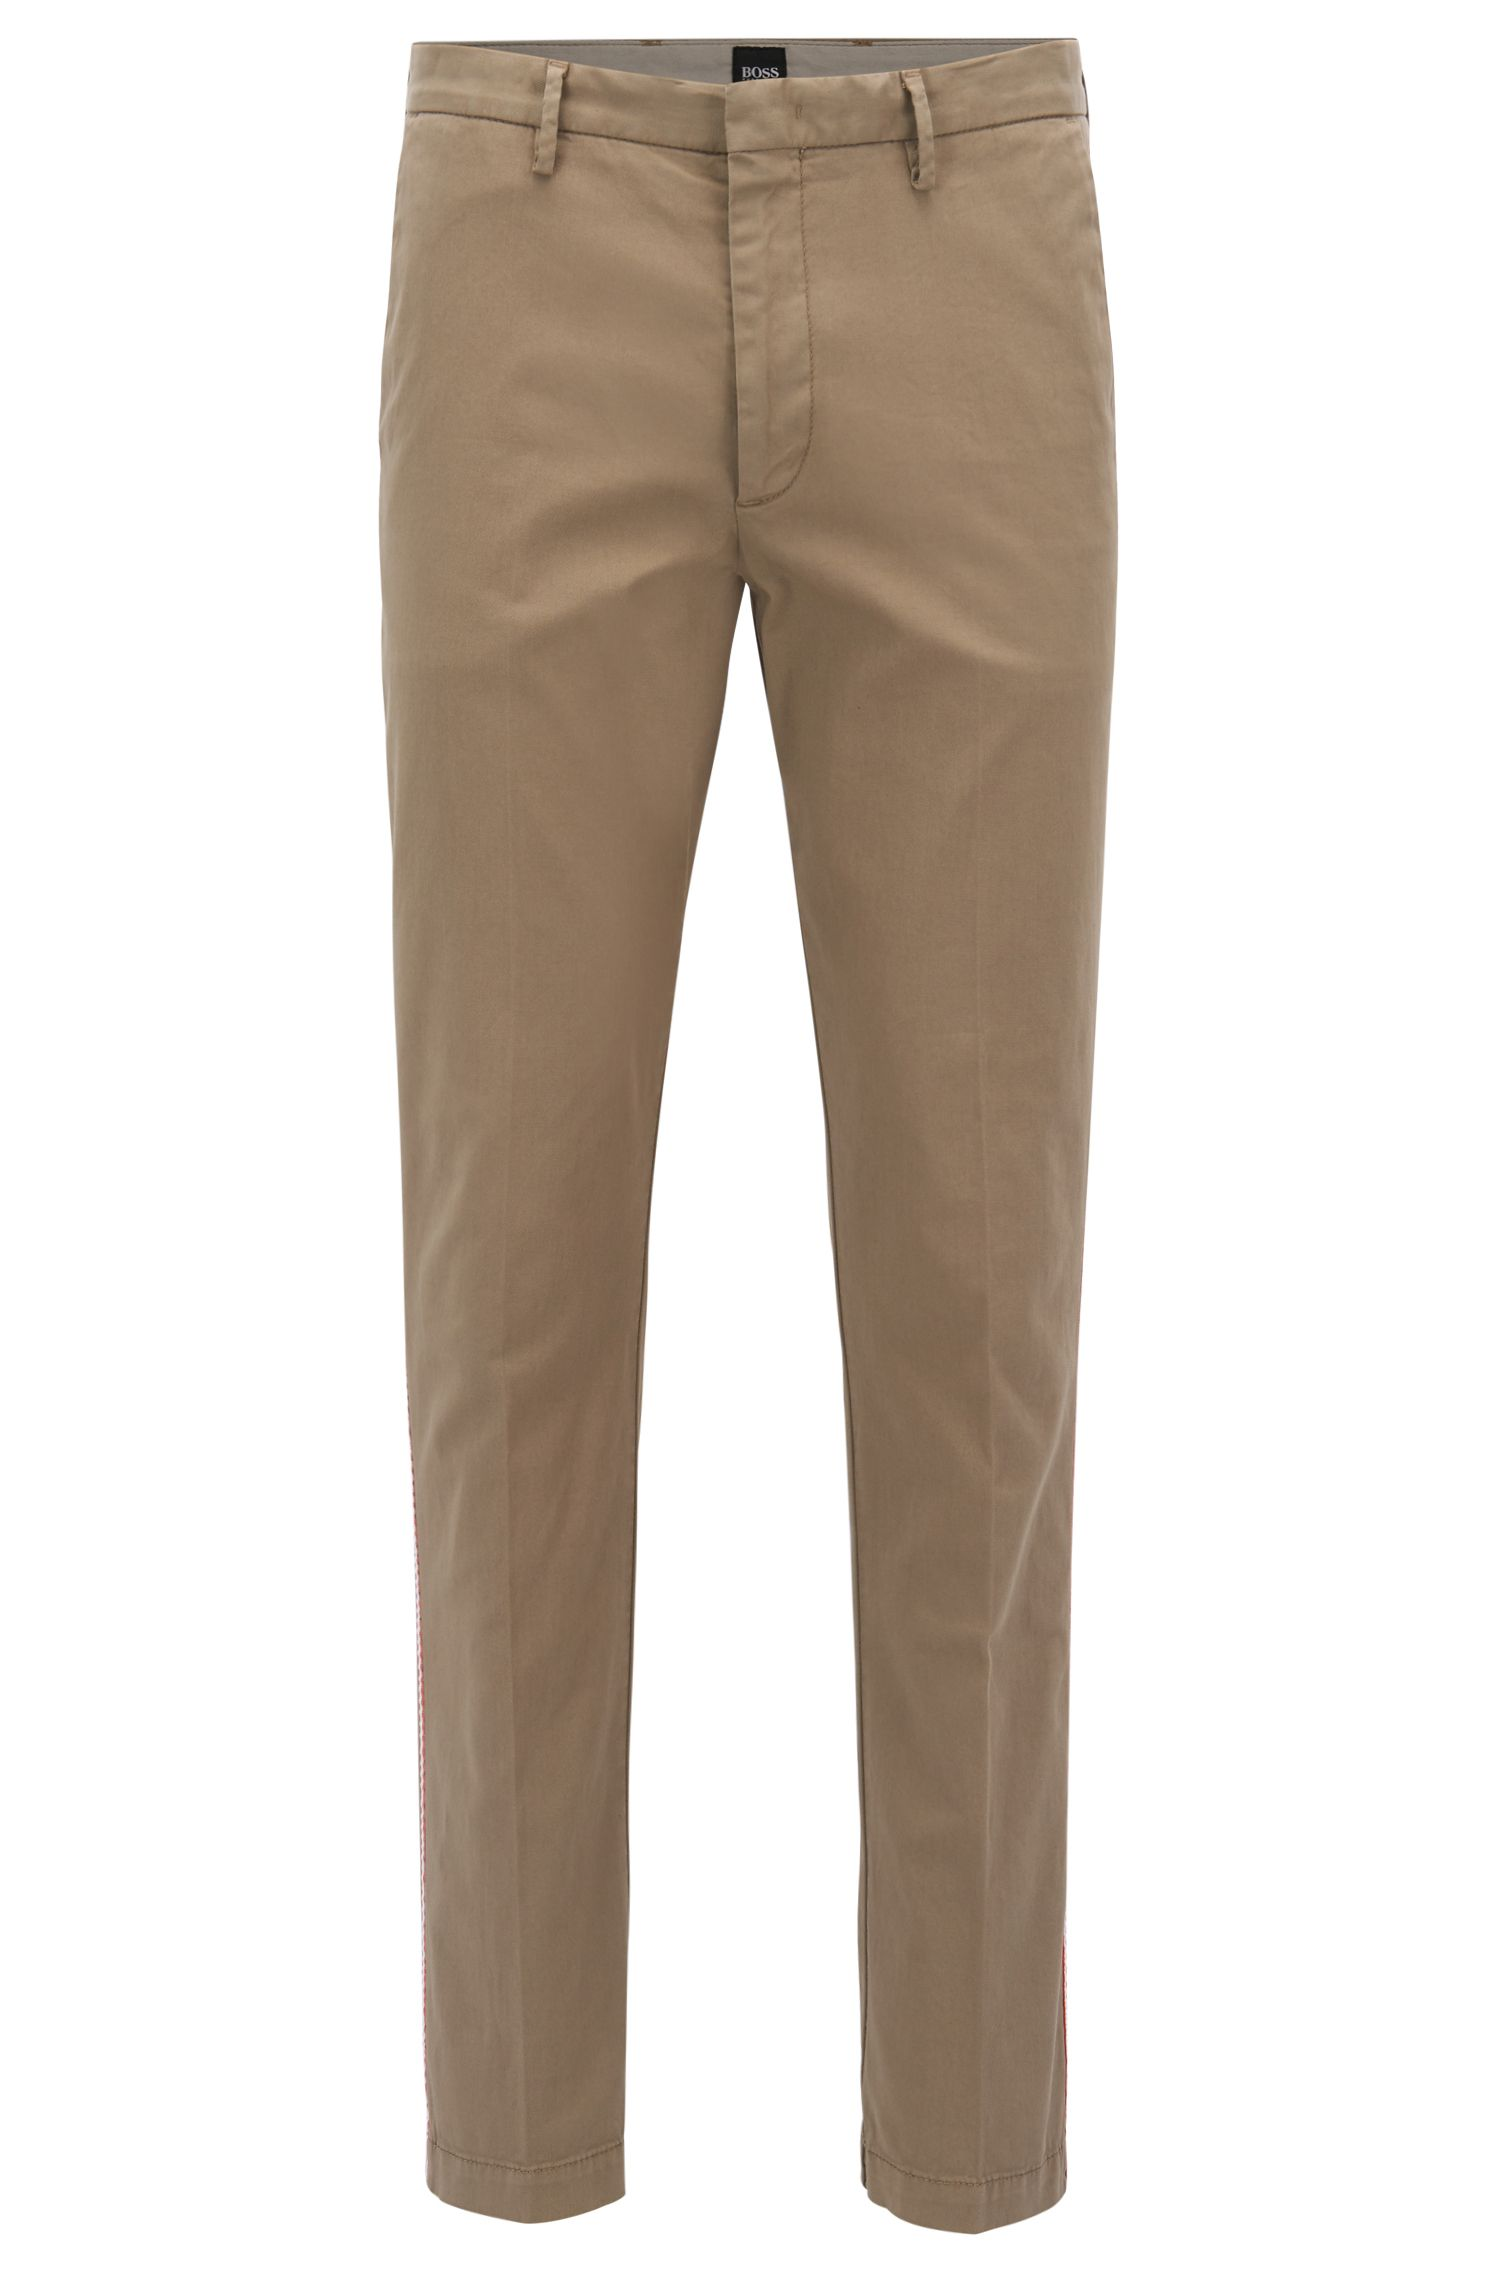 Grosgrain Trim Stretch Gabardine Pant, Tapered Fit | Kaito Rope D, Beige